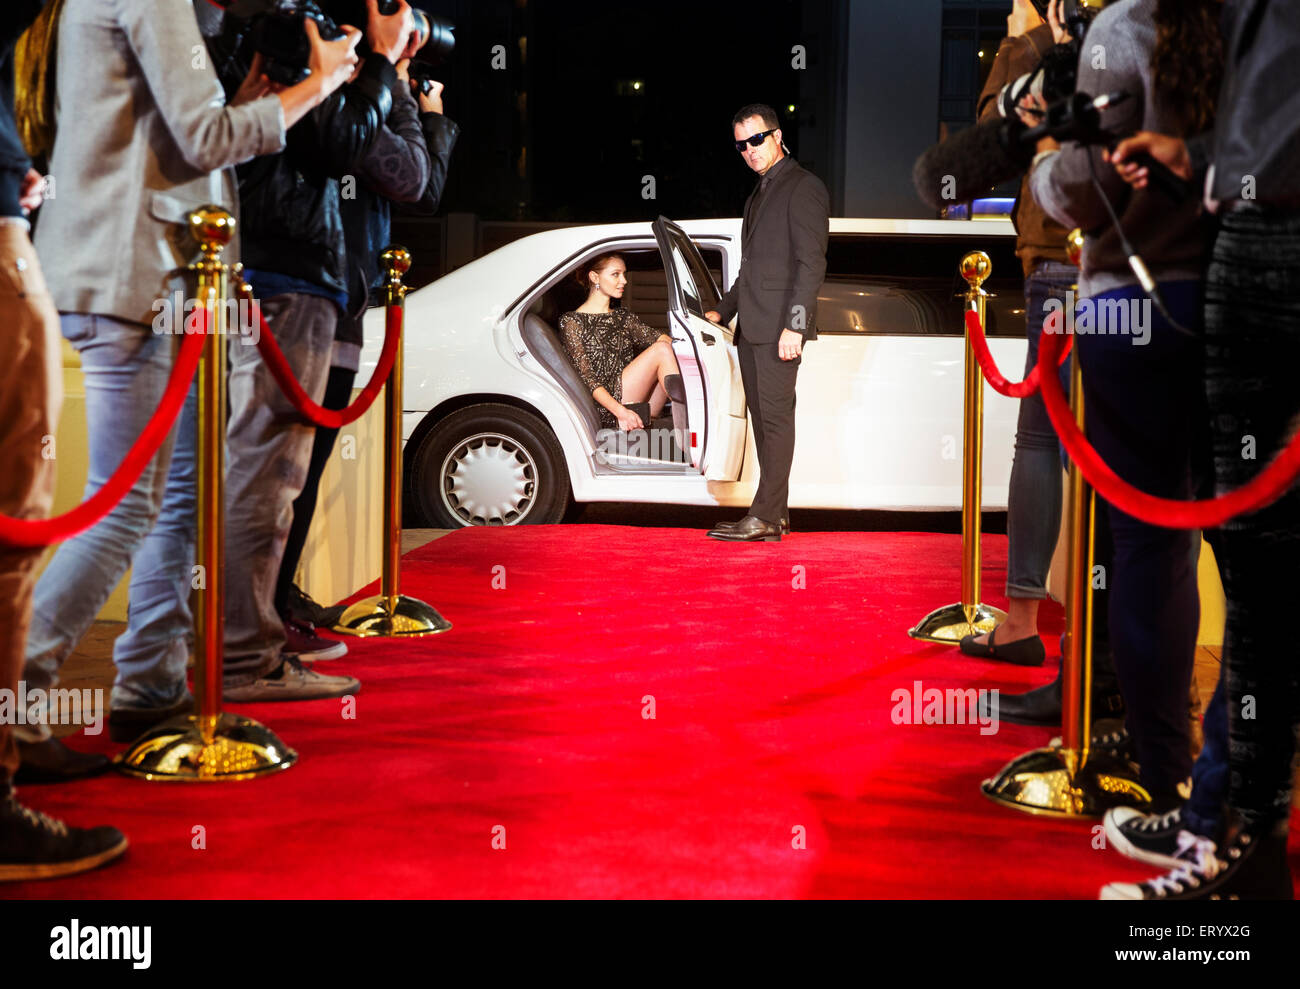 Bodyguard Opening Limousine For Celebrity Arriving At Red Carpet Stock